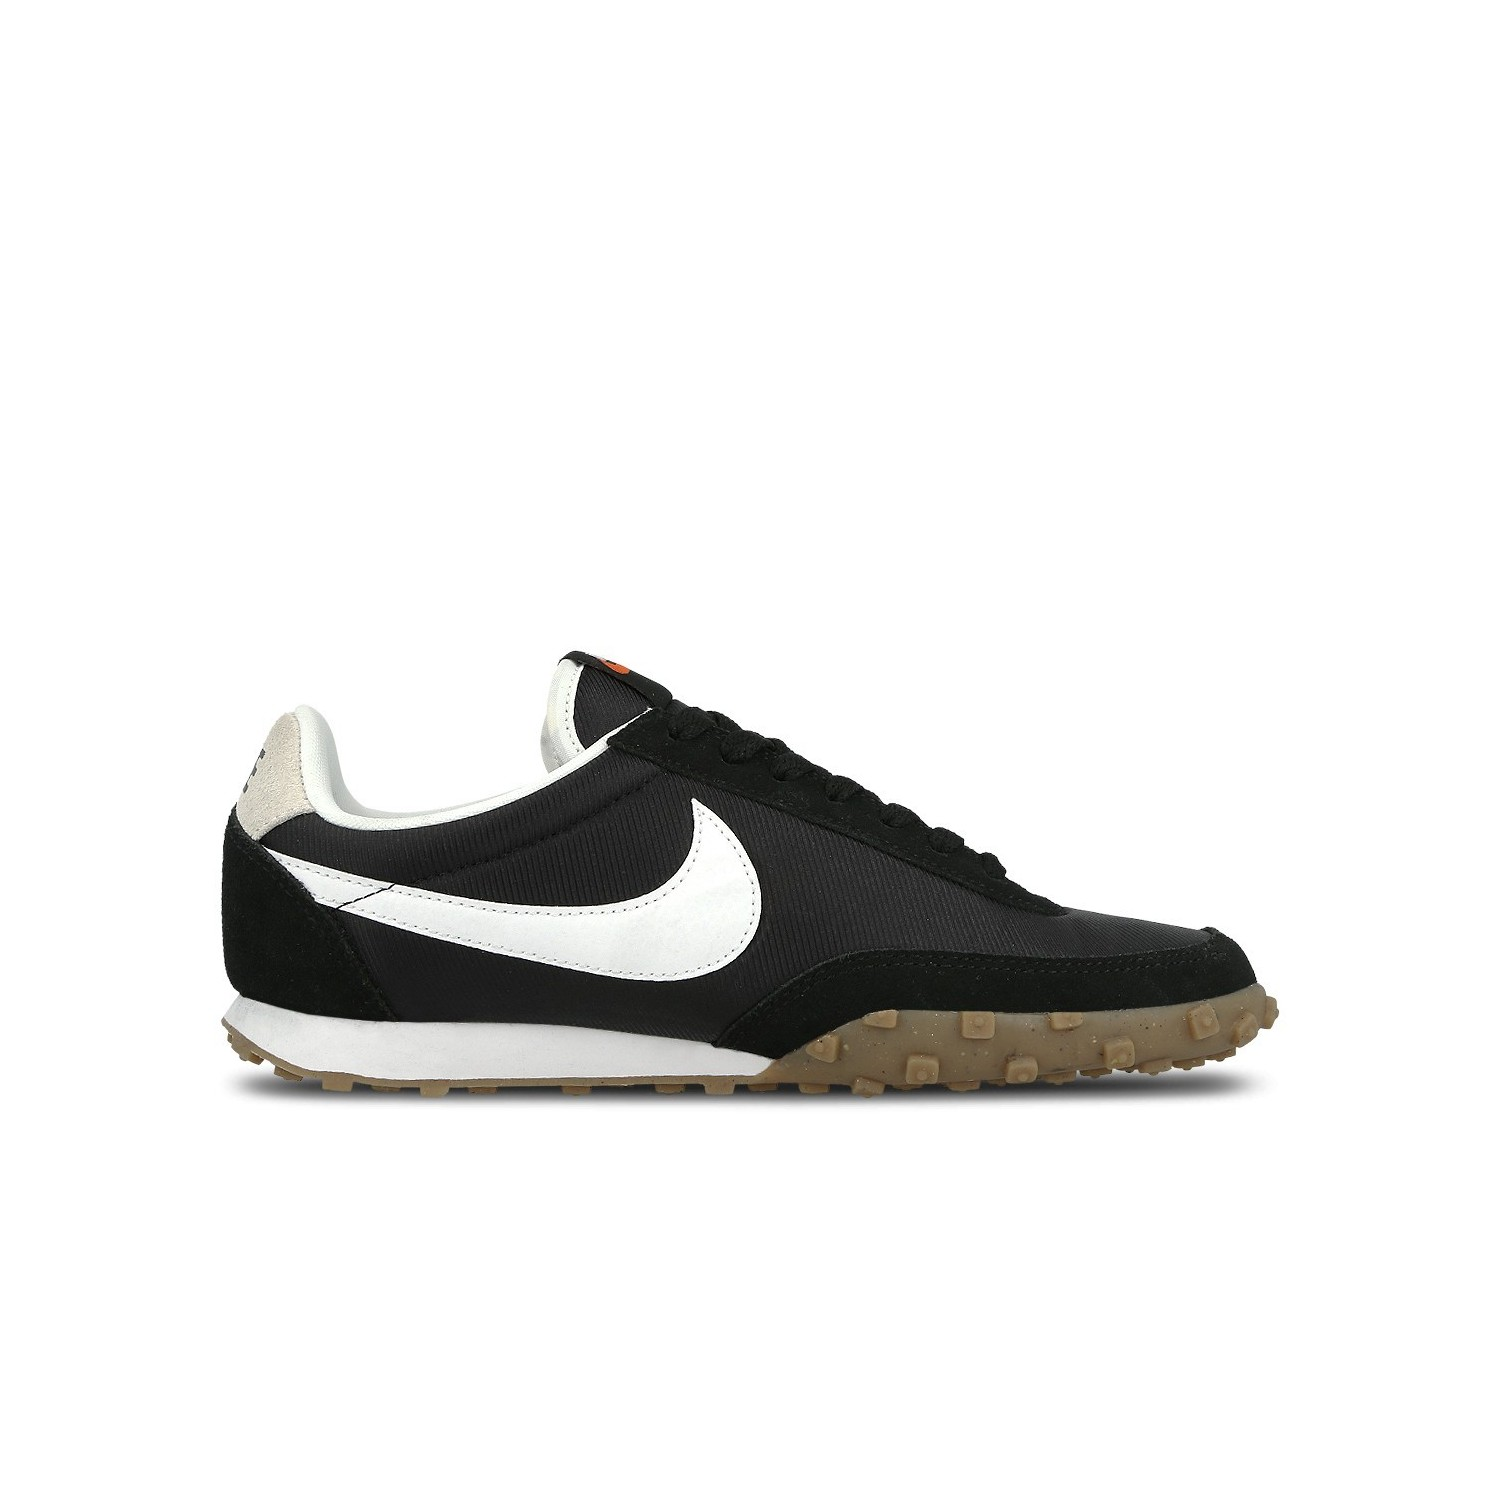 low priced 3f9bb b7829 Nike Waffle Racer Wmns 881183 001 ...